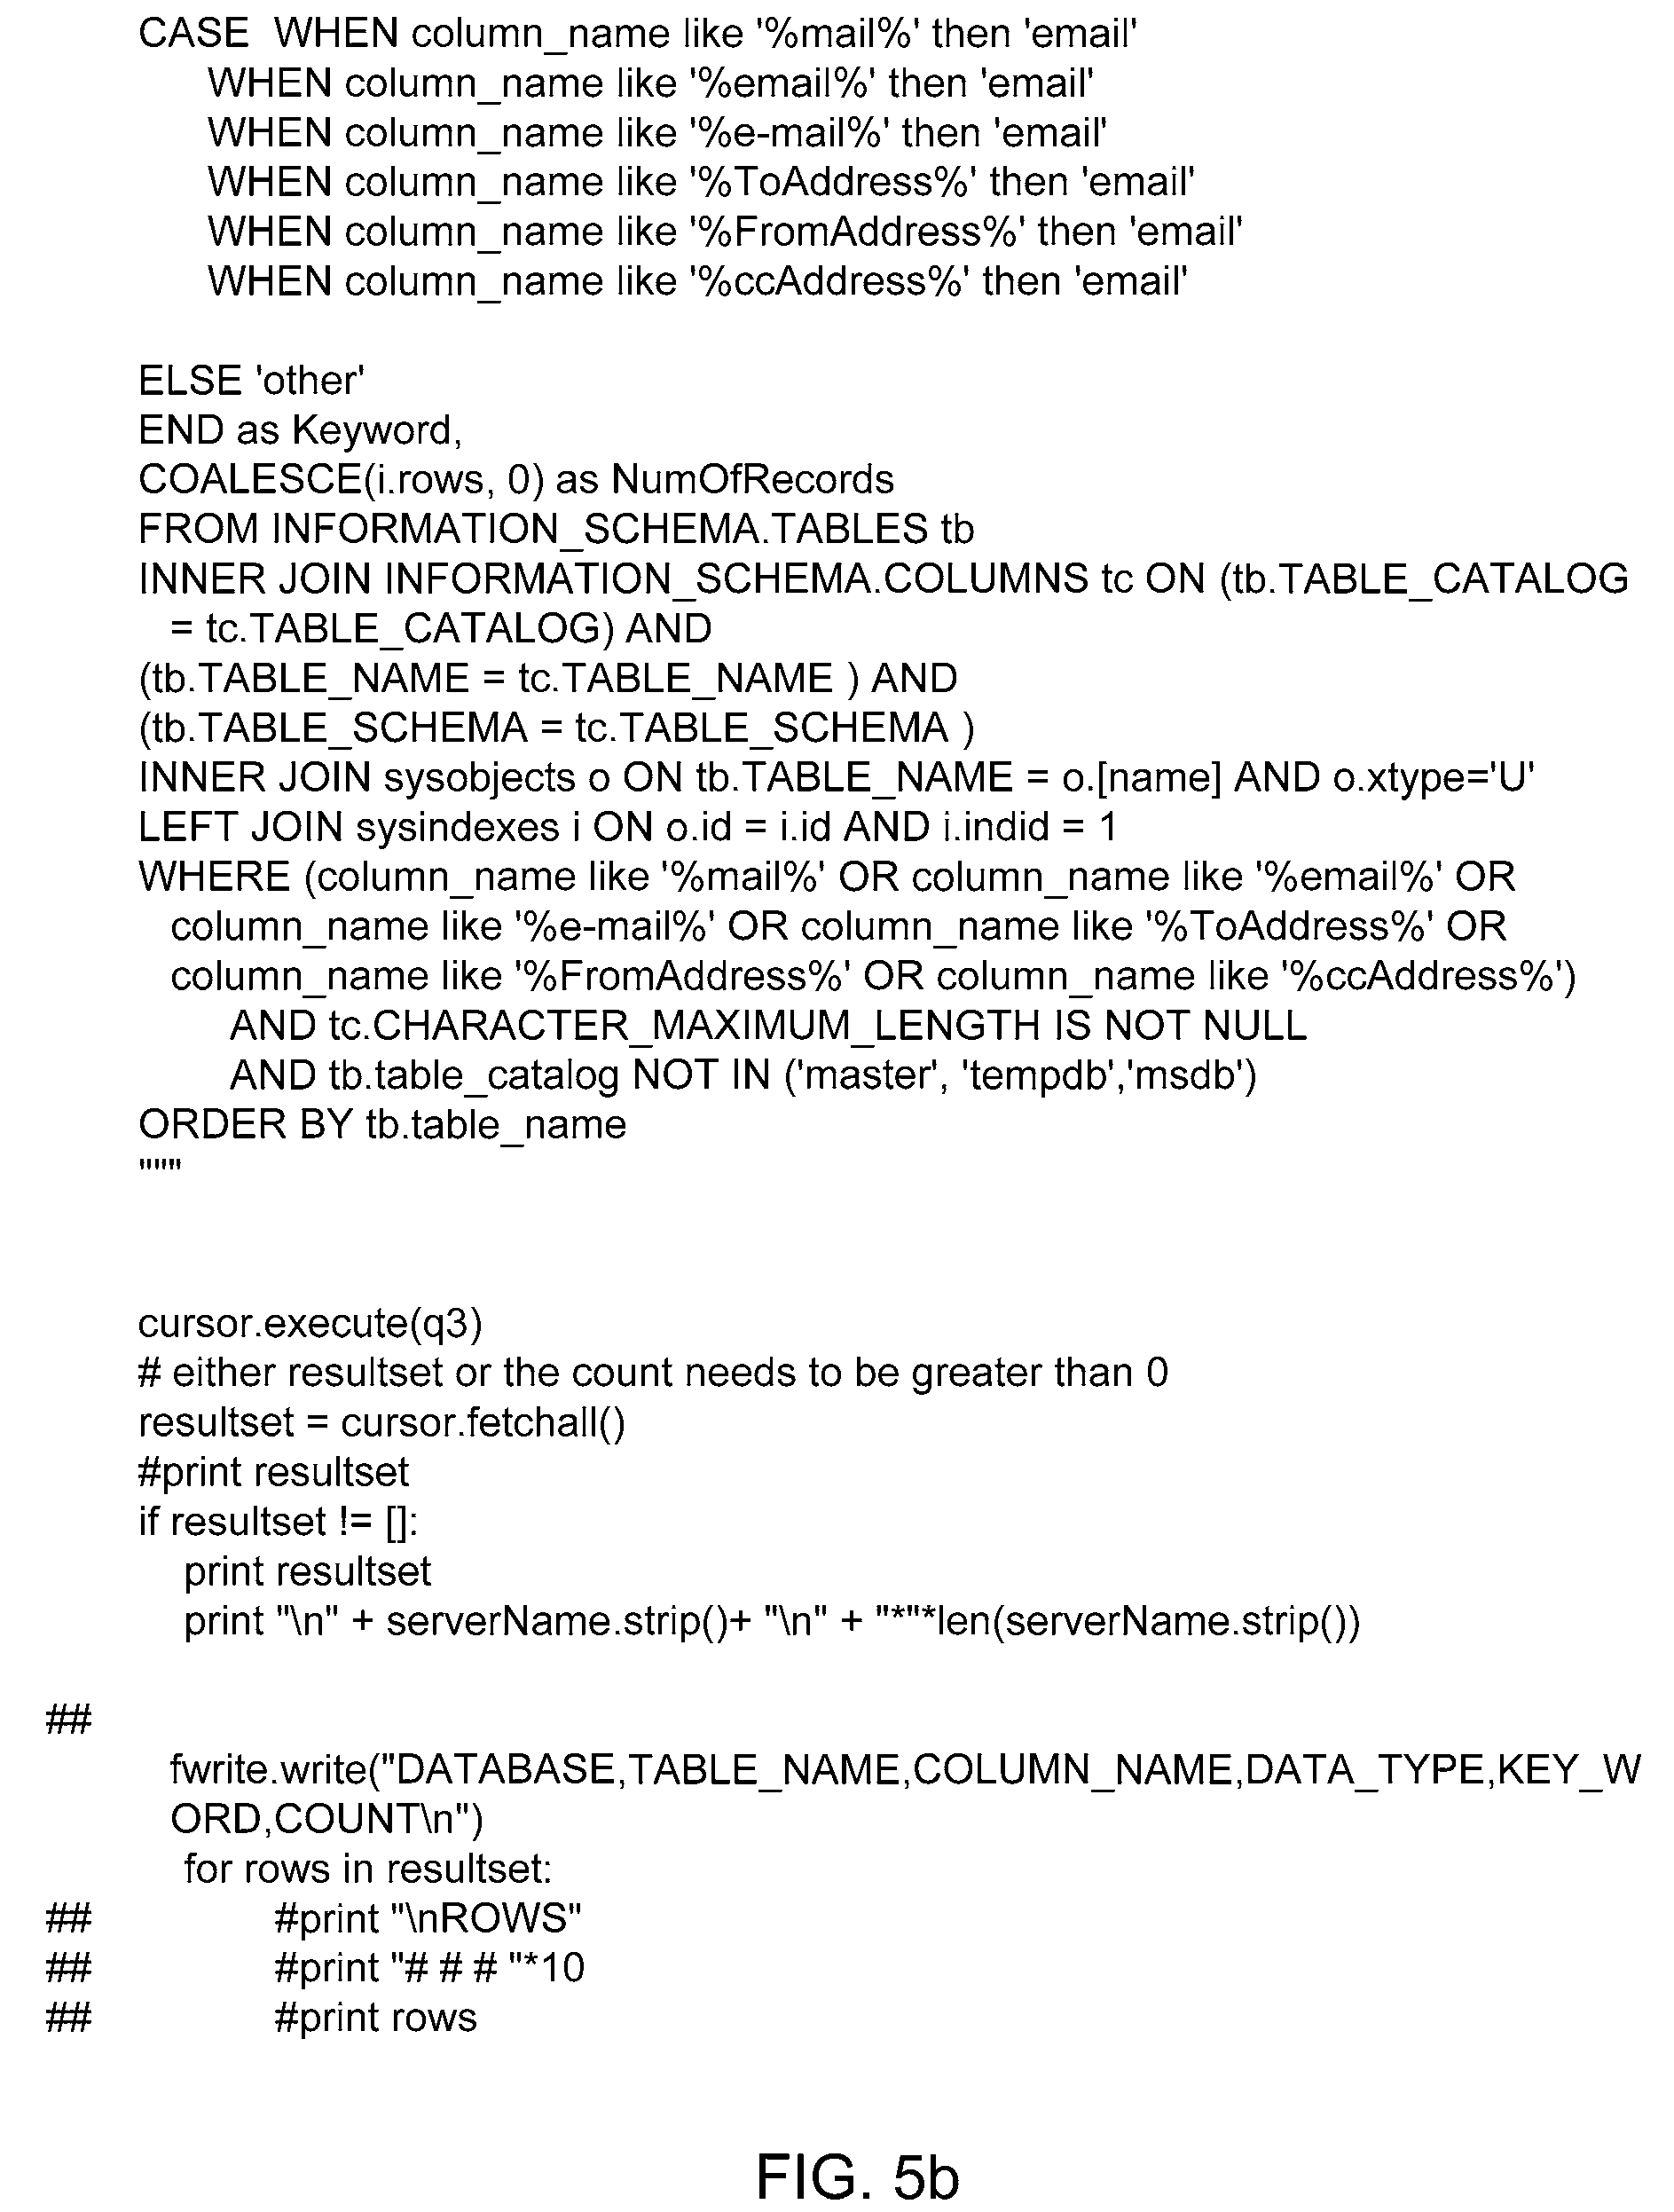 a report on computer networks Past papers and examiners' reports for the computer networks diploma of the bcs professional examinations.